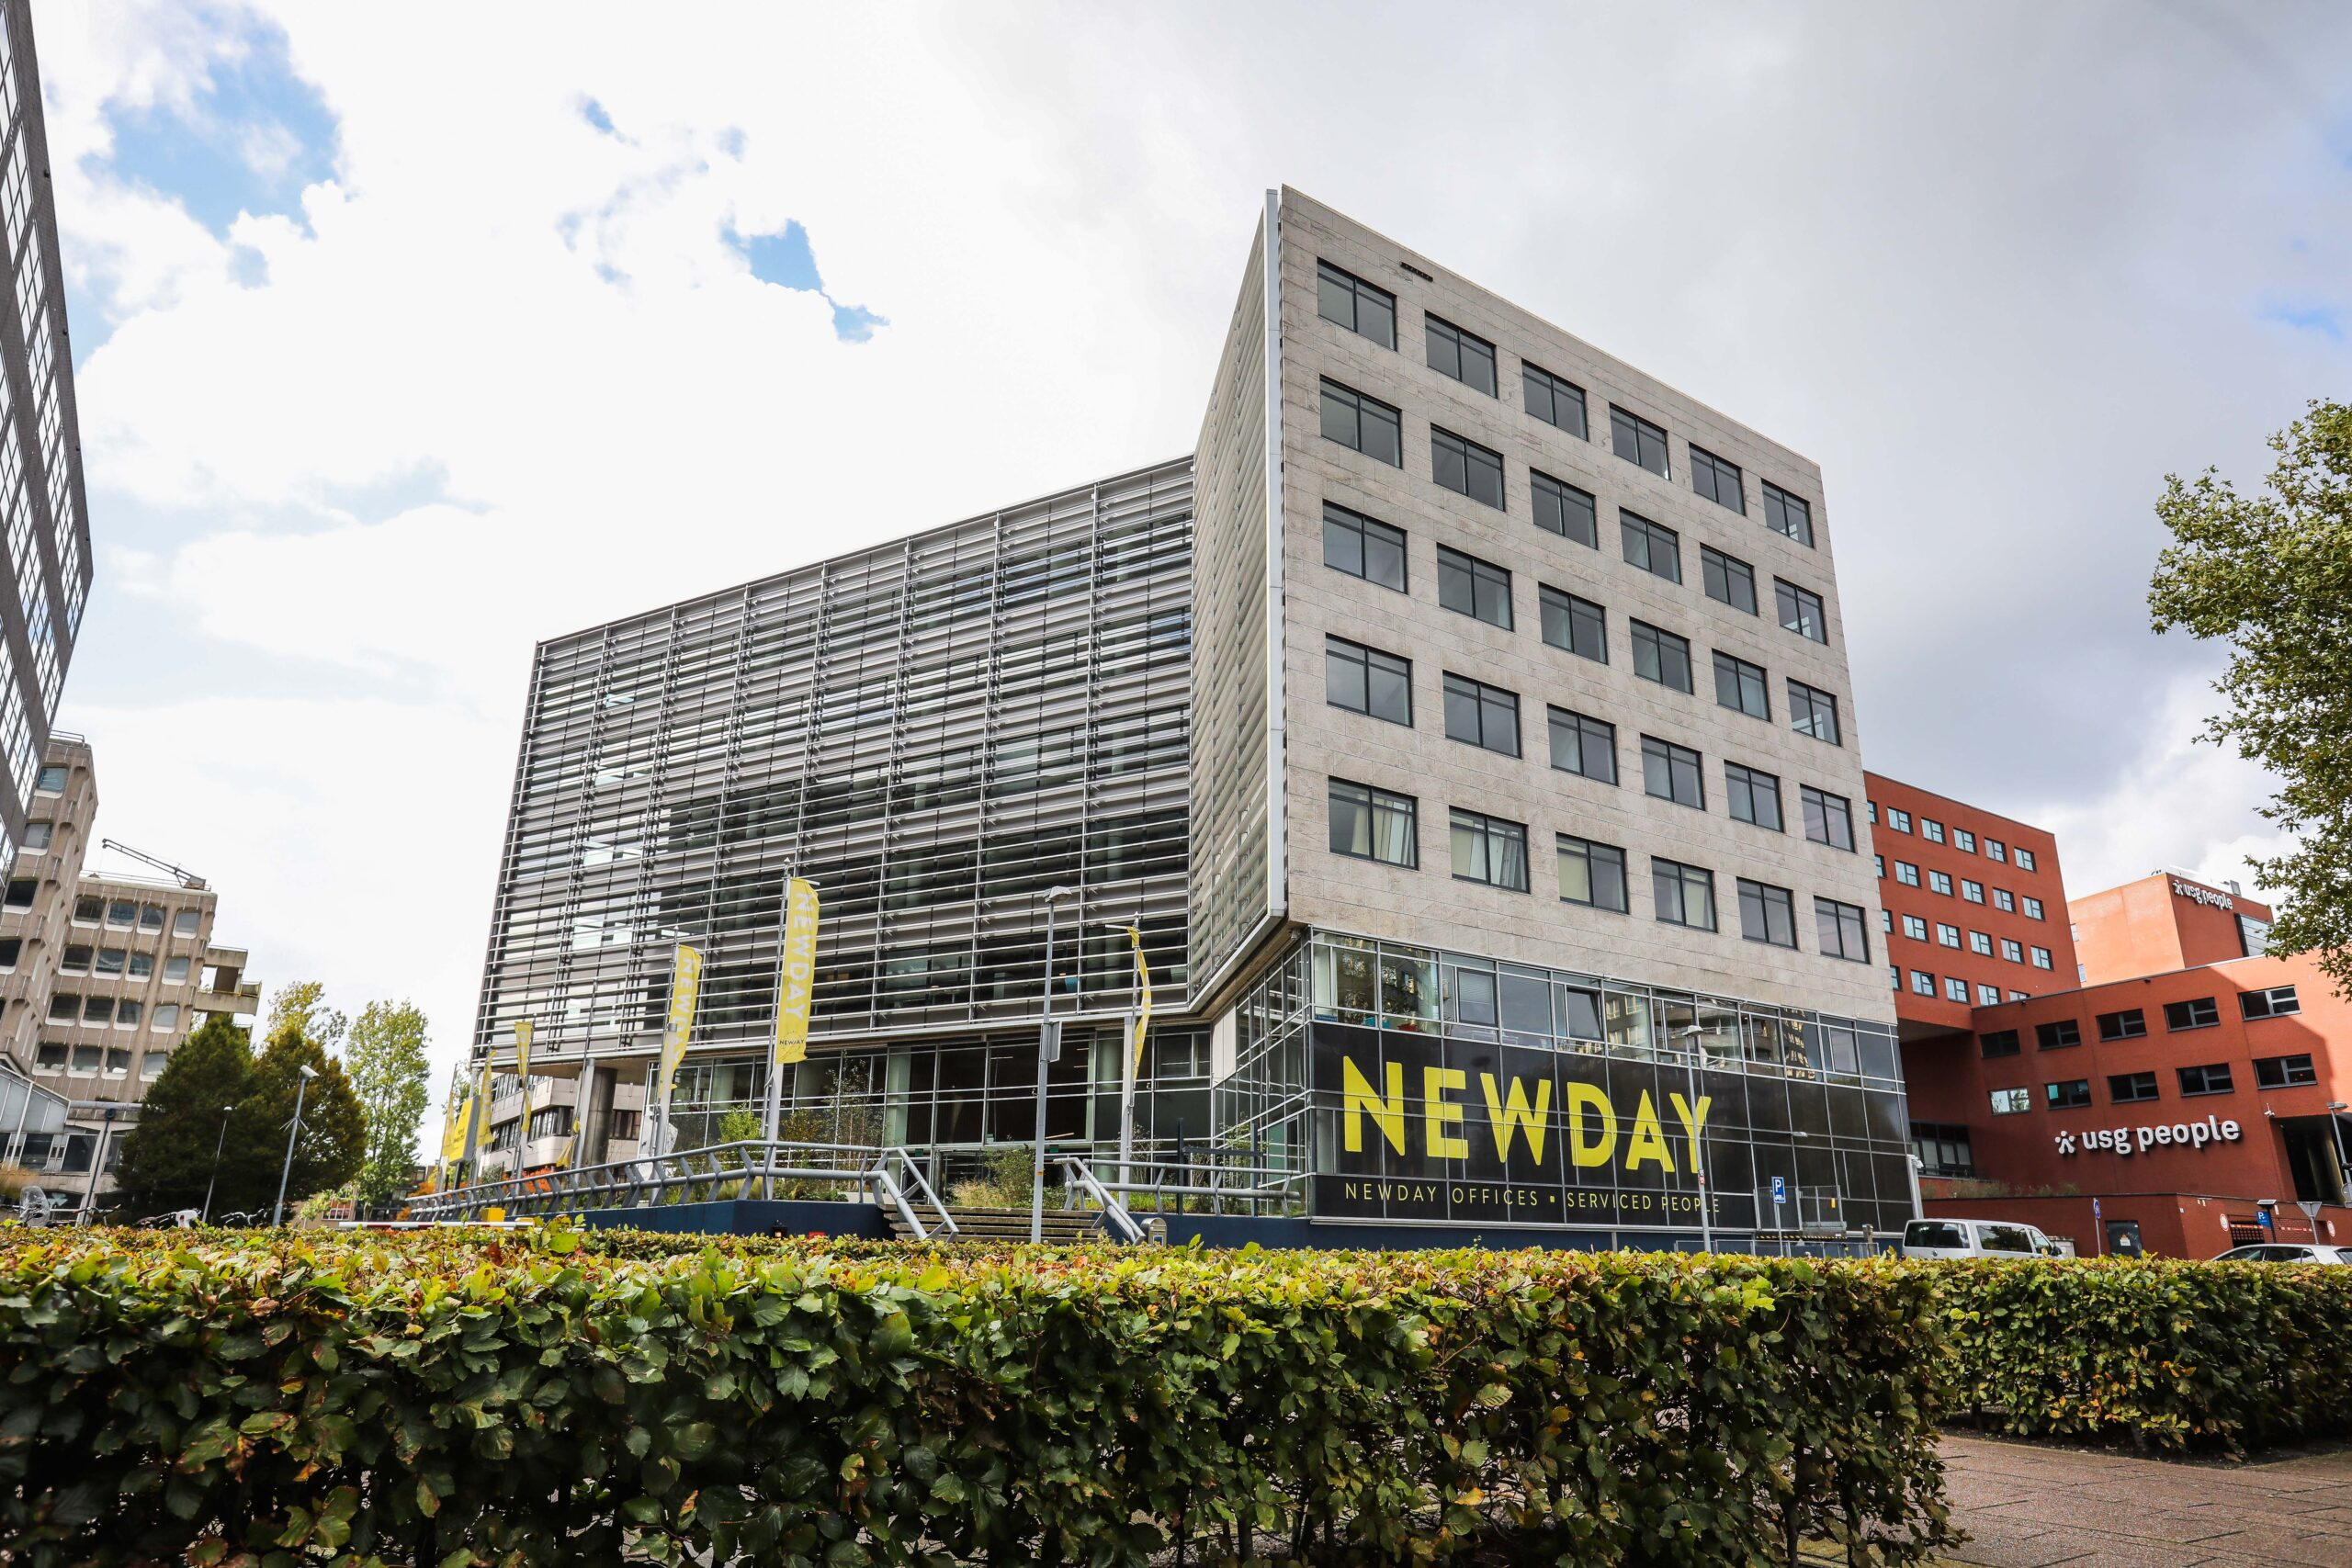 Newday Offices Almere